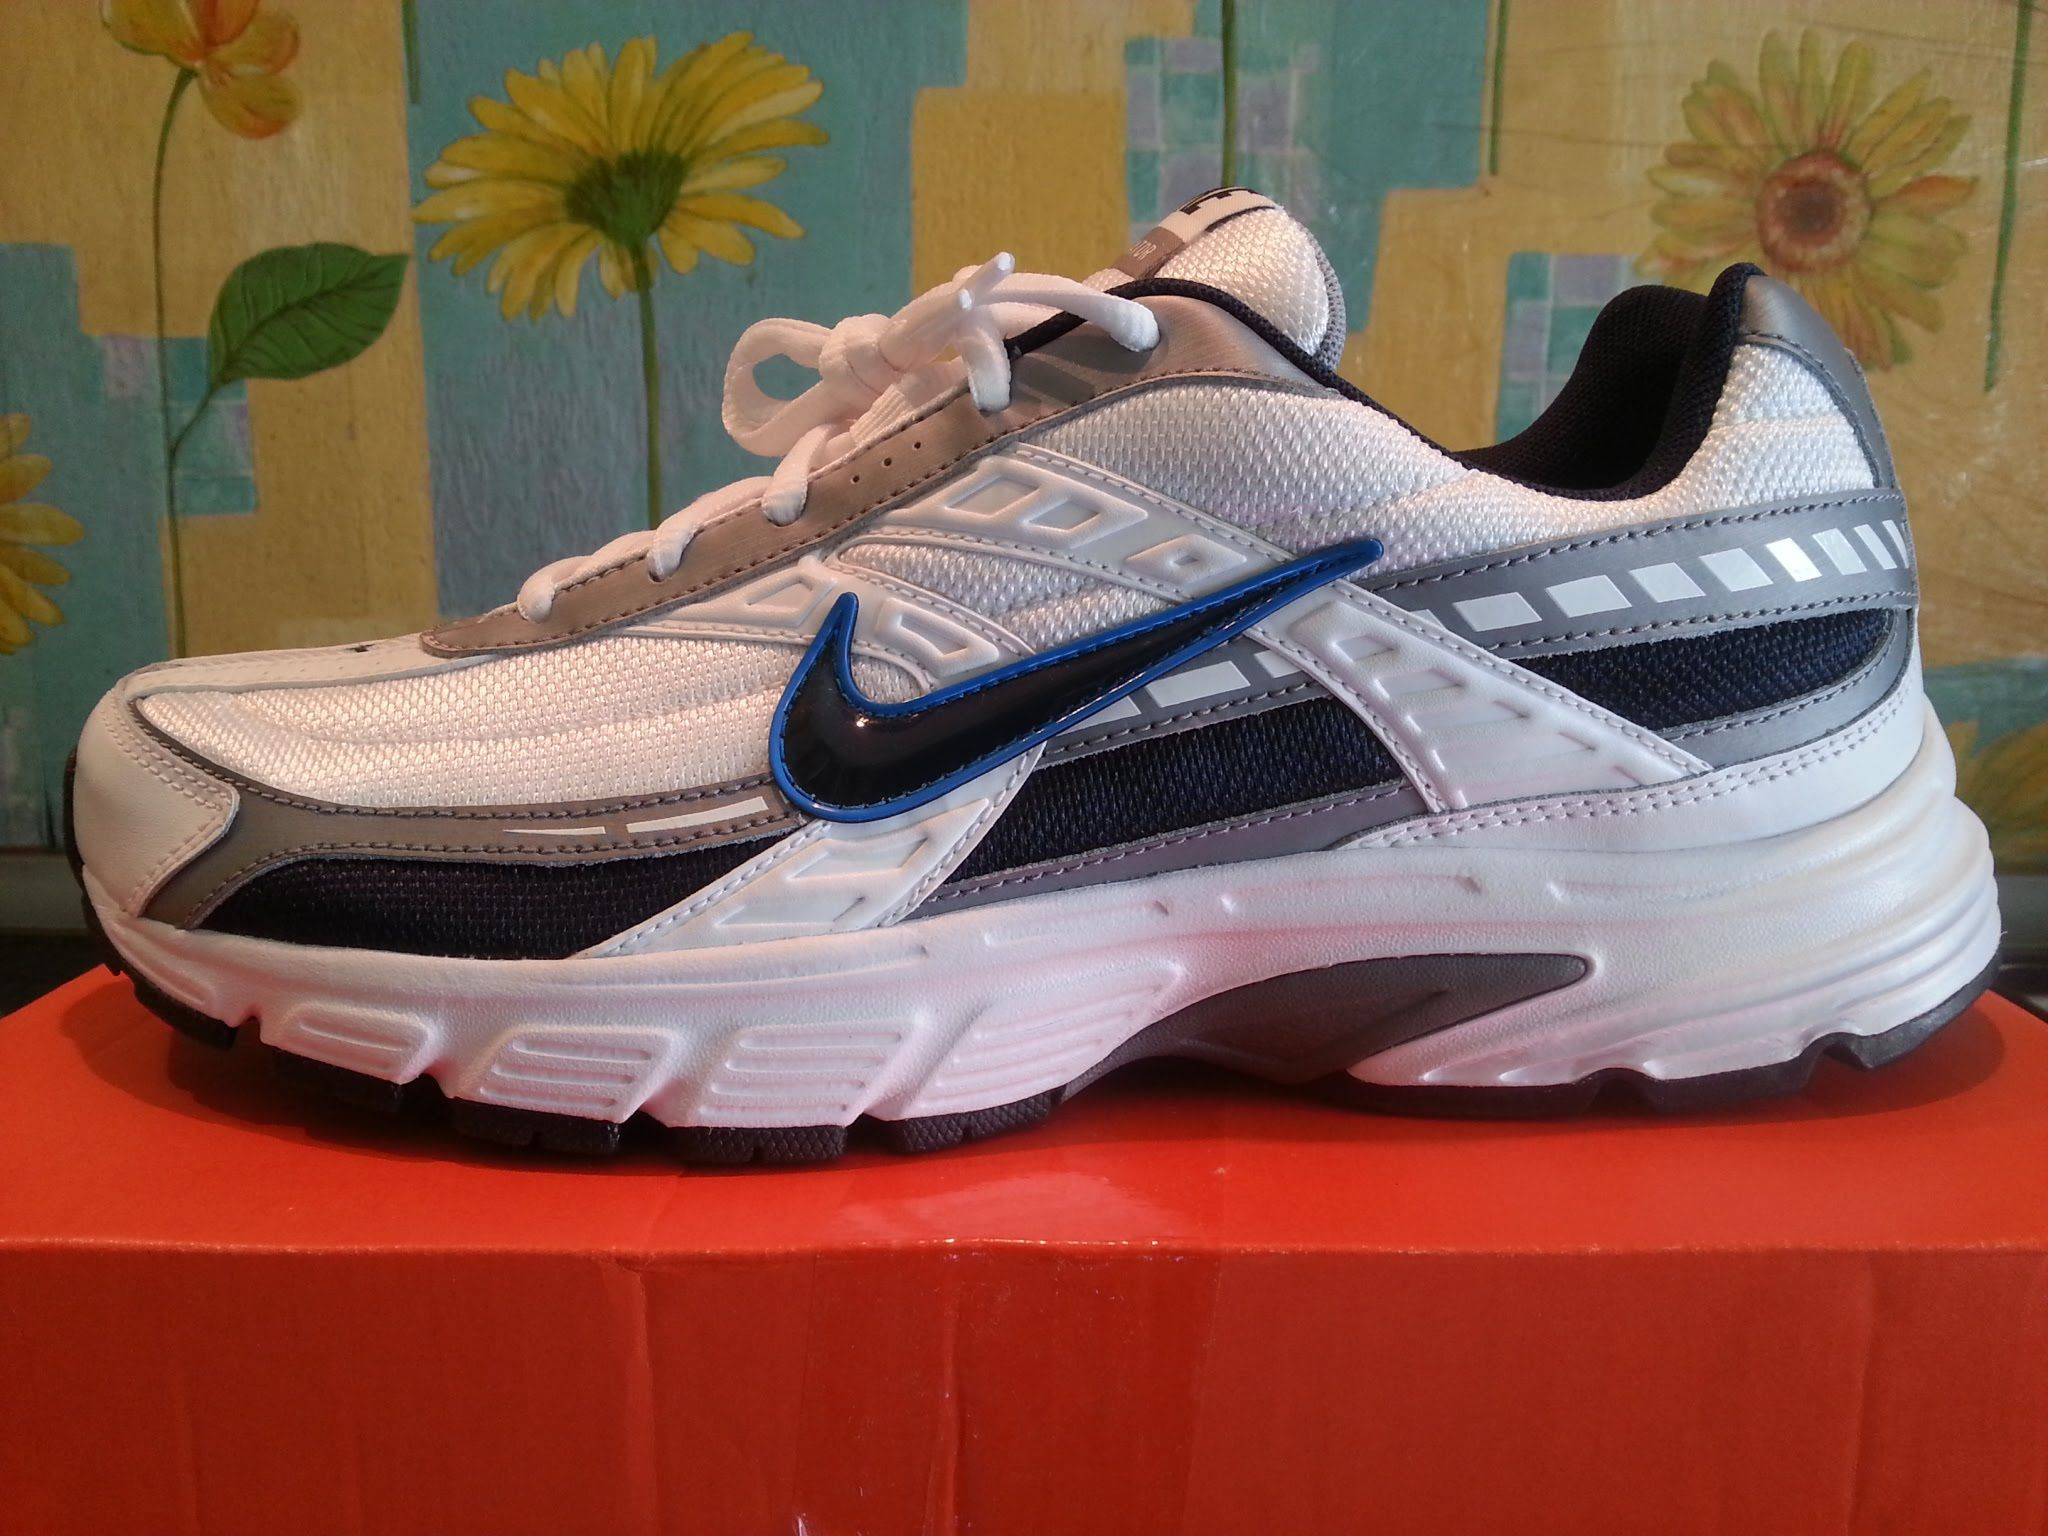 Nike Initiator Men's Running Shoes Full HD 1080p Unboxing #NikeInitiator